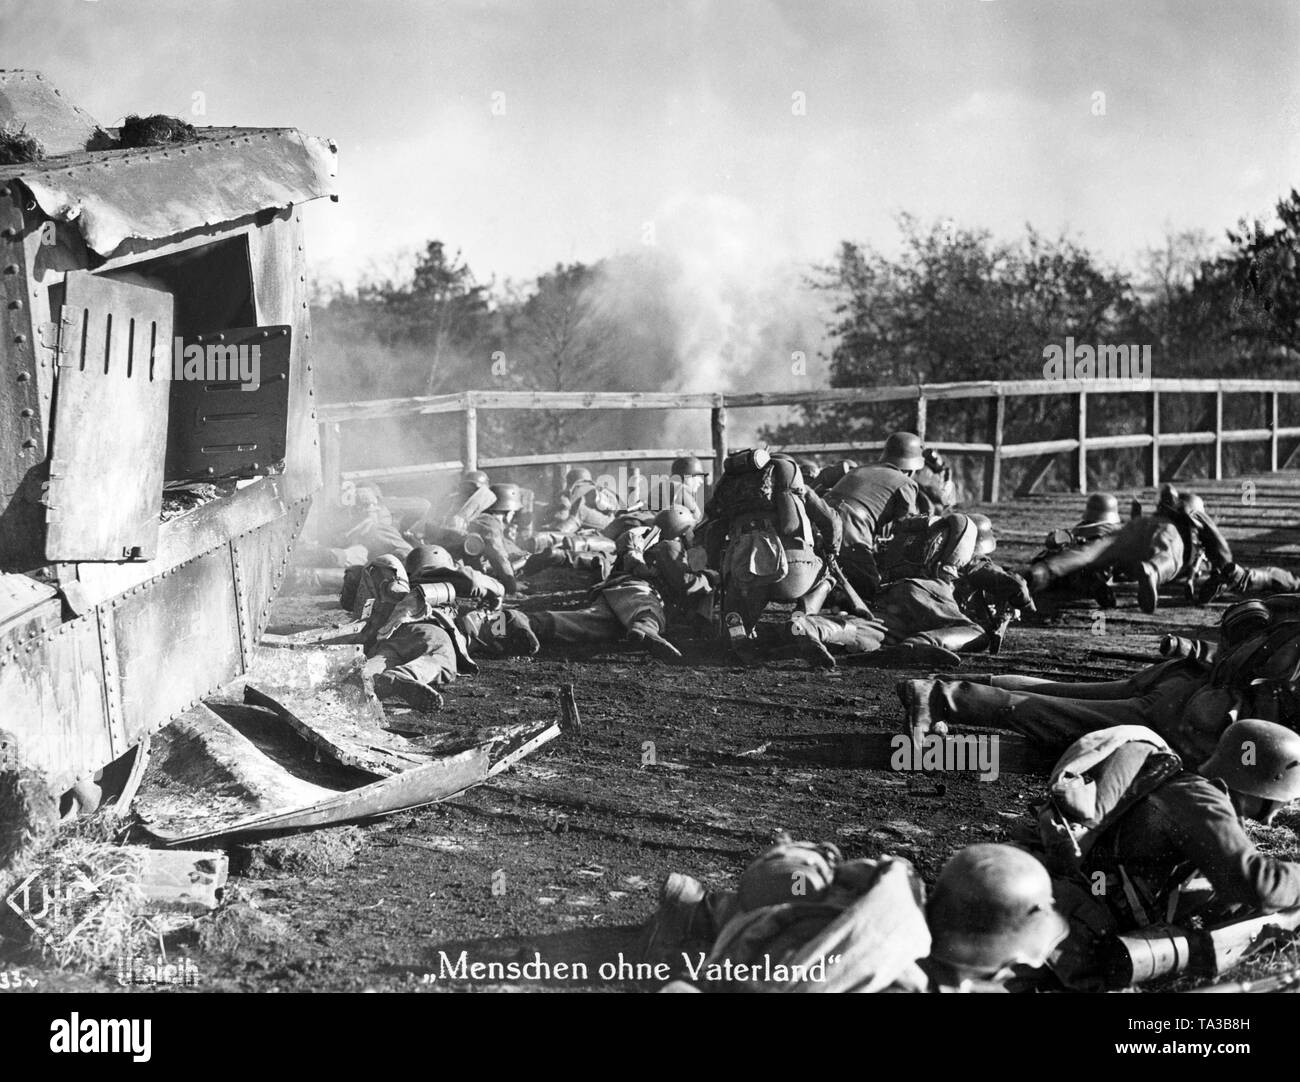 The UFA film 'Men Without a Fatherland' from 1937 is about the Freikorps 'Iron Division', a volunteer unit consisting of Germans and Baltic Germans fighting for the newly founded Baltic states against the Soviet Red Army. Here is the scene of a fight on a bridge. - Stock Image